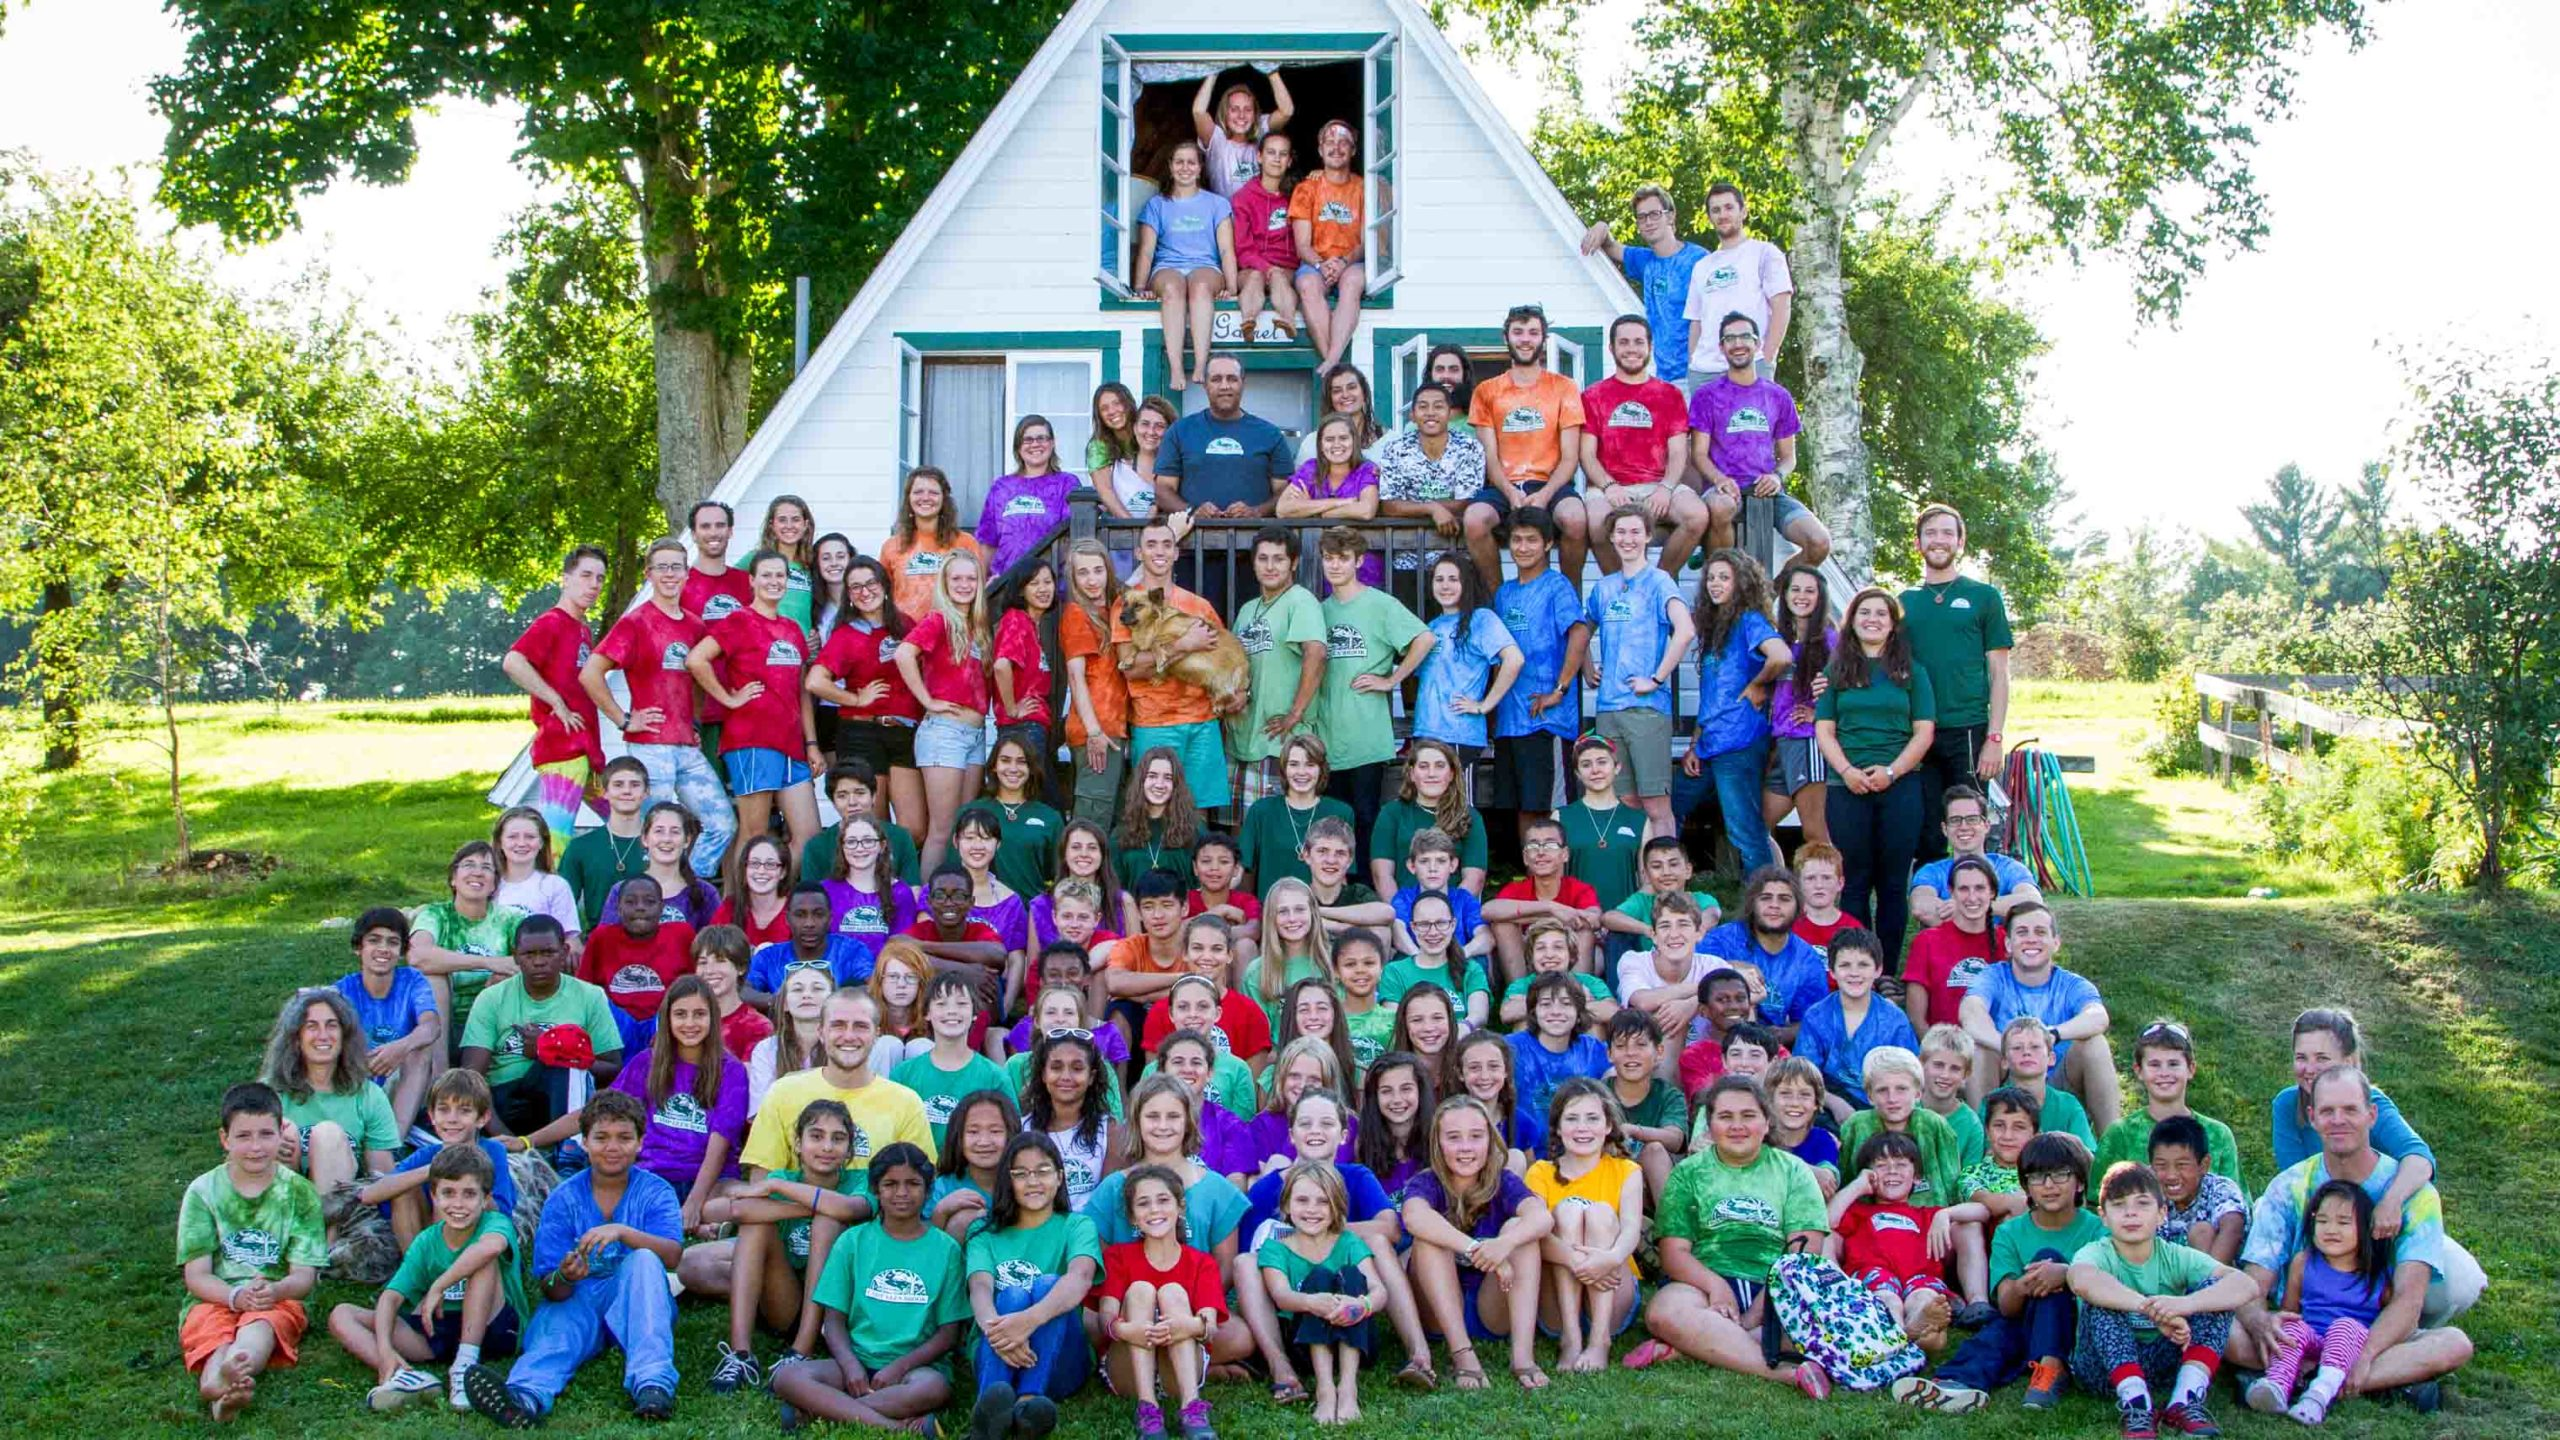 A large group of campers in a group photo.